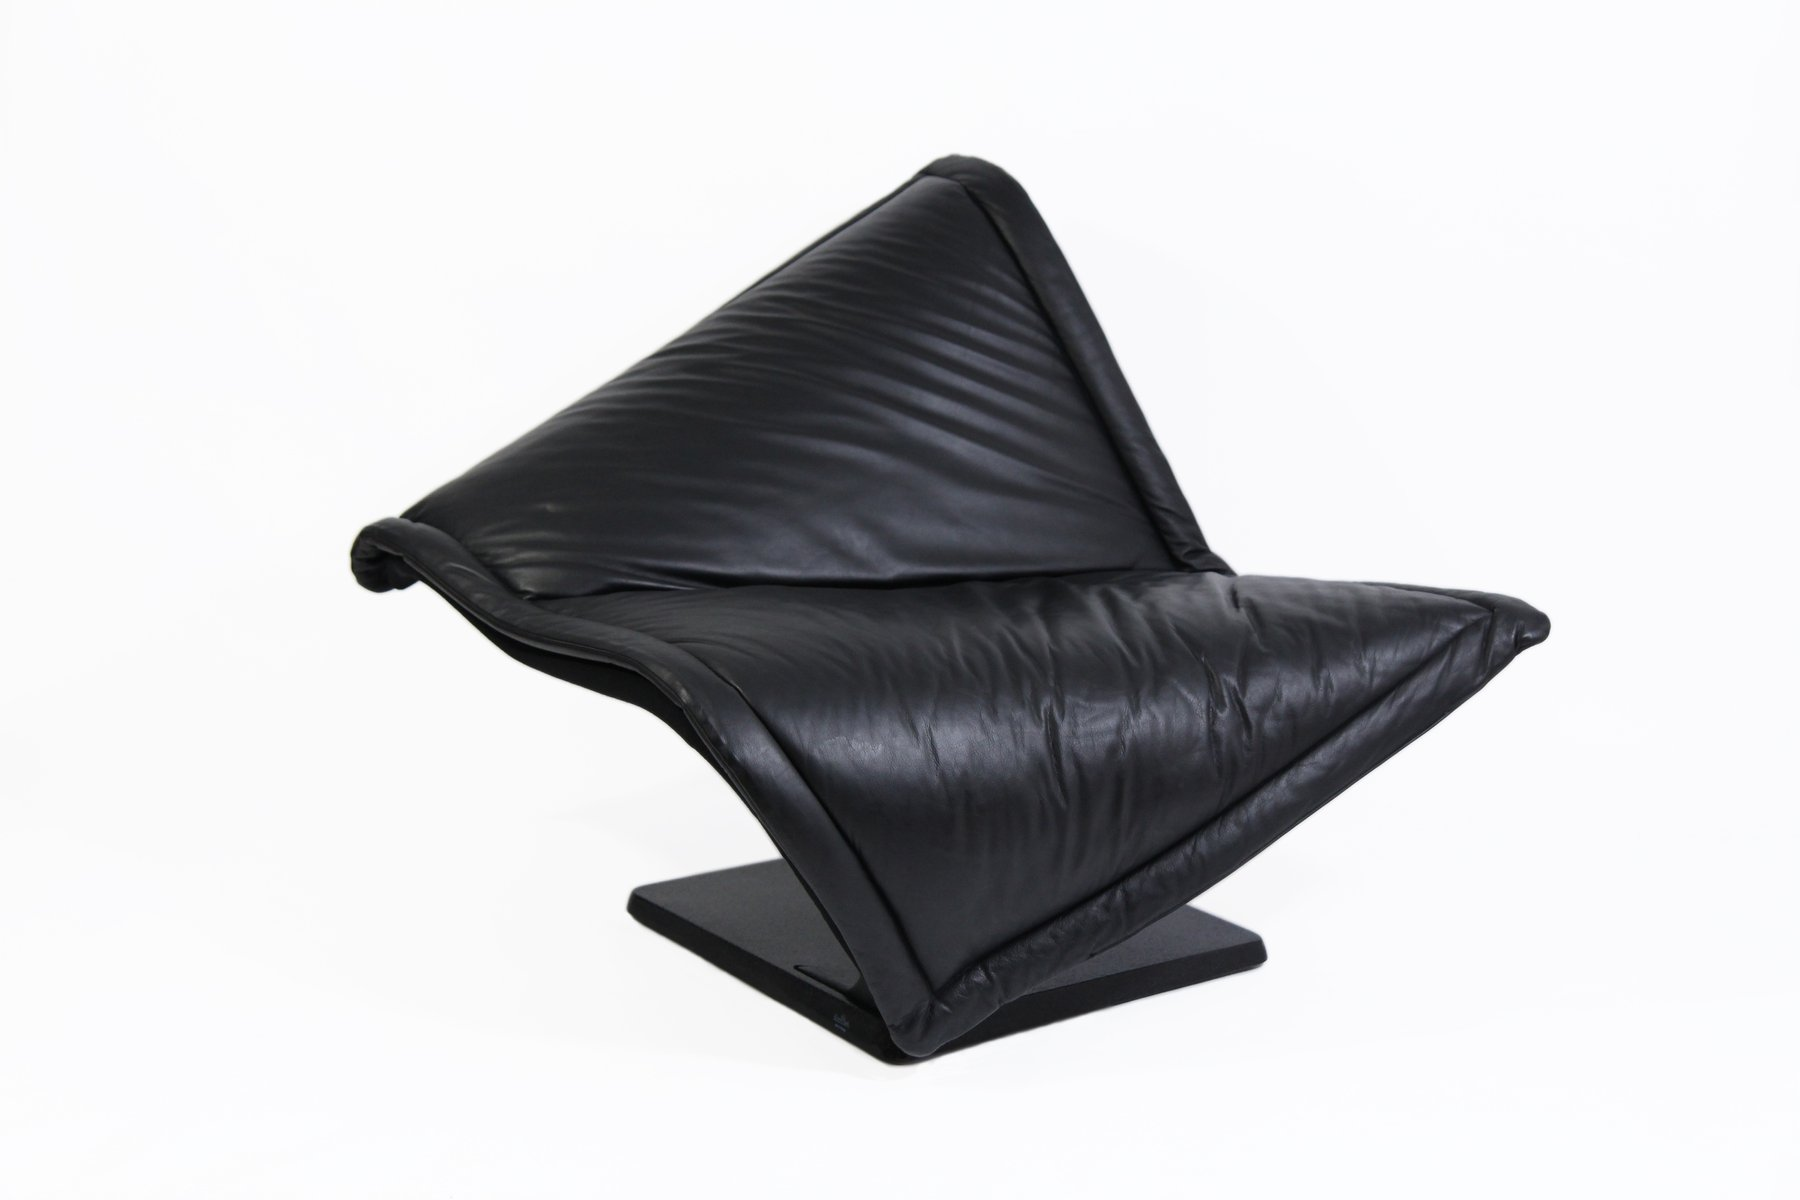 Fesselnde Tantra Stuhl Galerie Von Flying Carpet Chairsimon Desanta For Rosenthal For